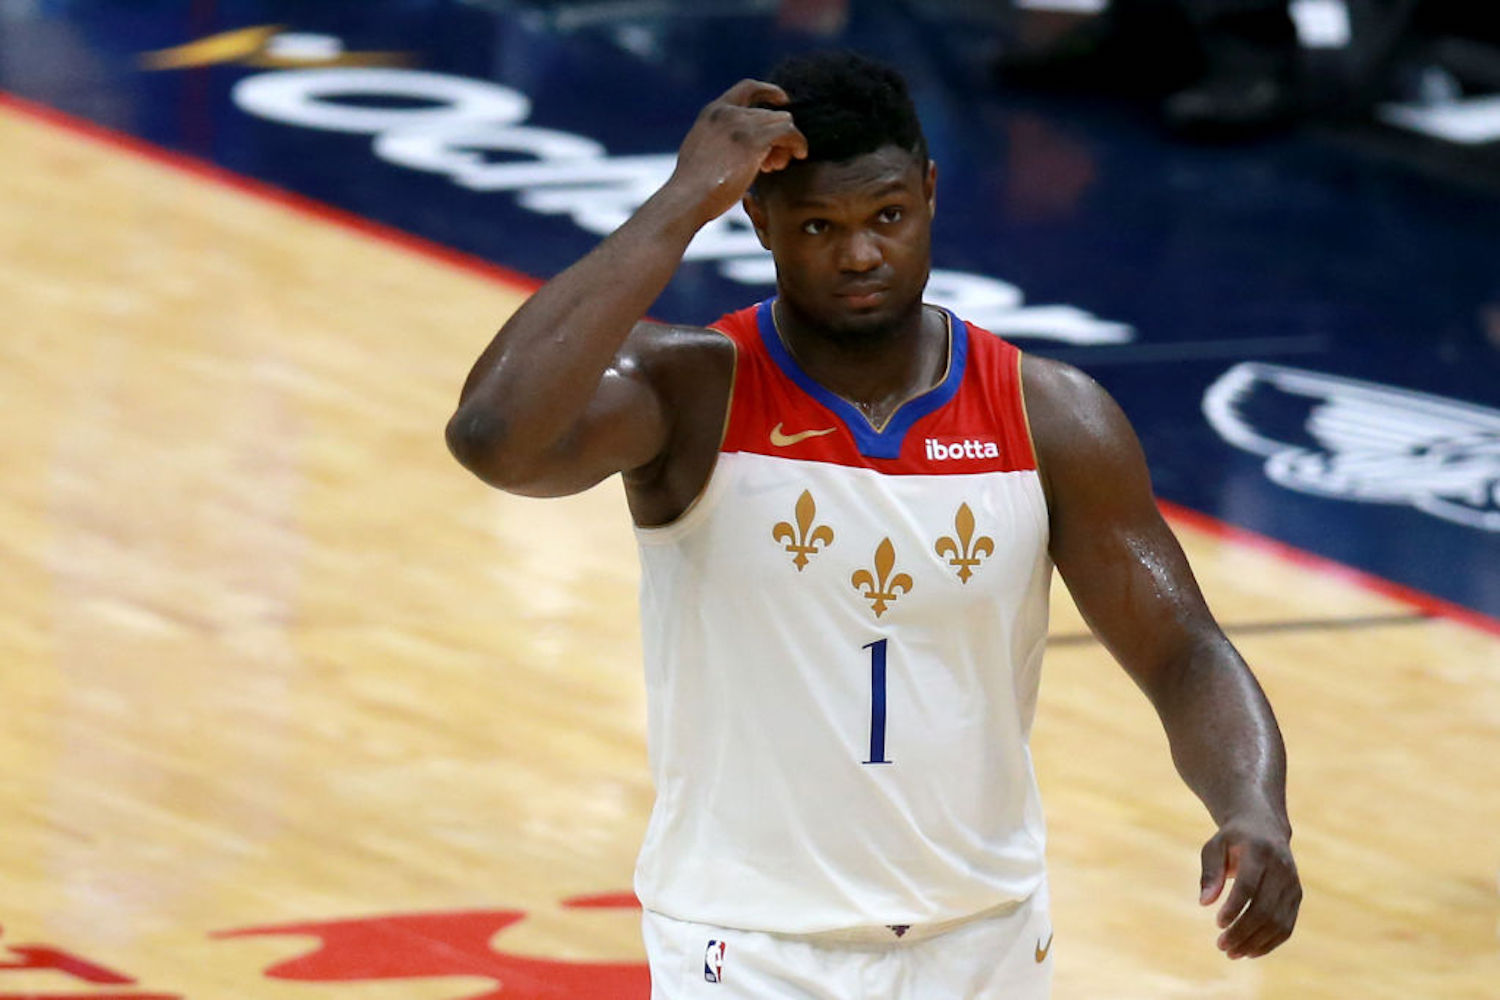 Zion Williamson isn't hurt, but he won't be suiting up for the Pelicans on Wednesday night. Why is he out and is it related to COVID-19?